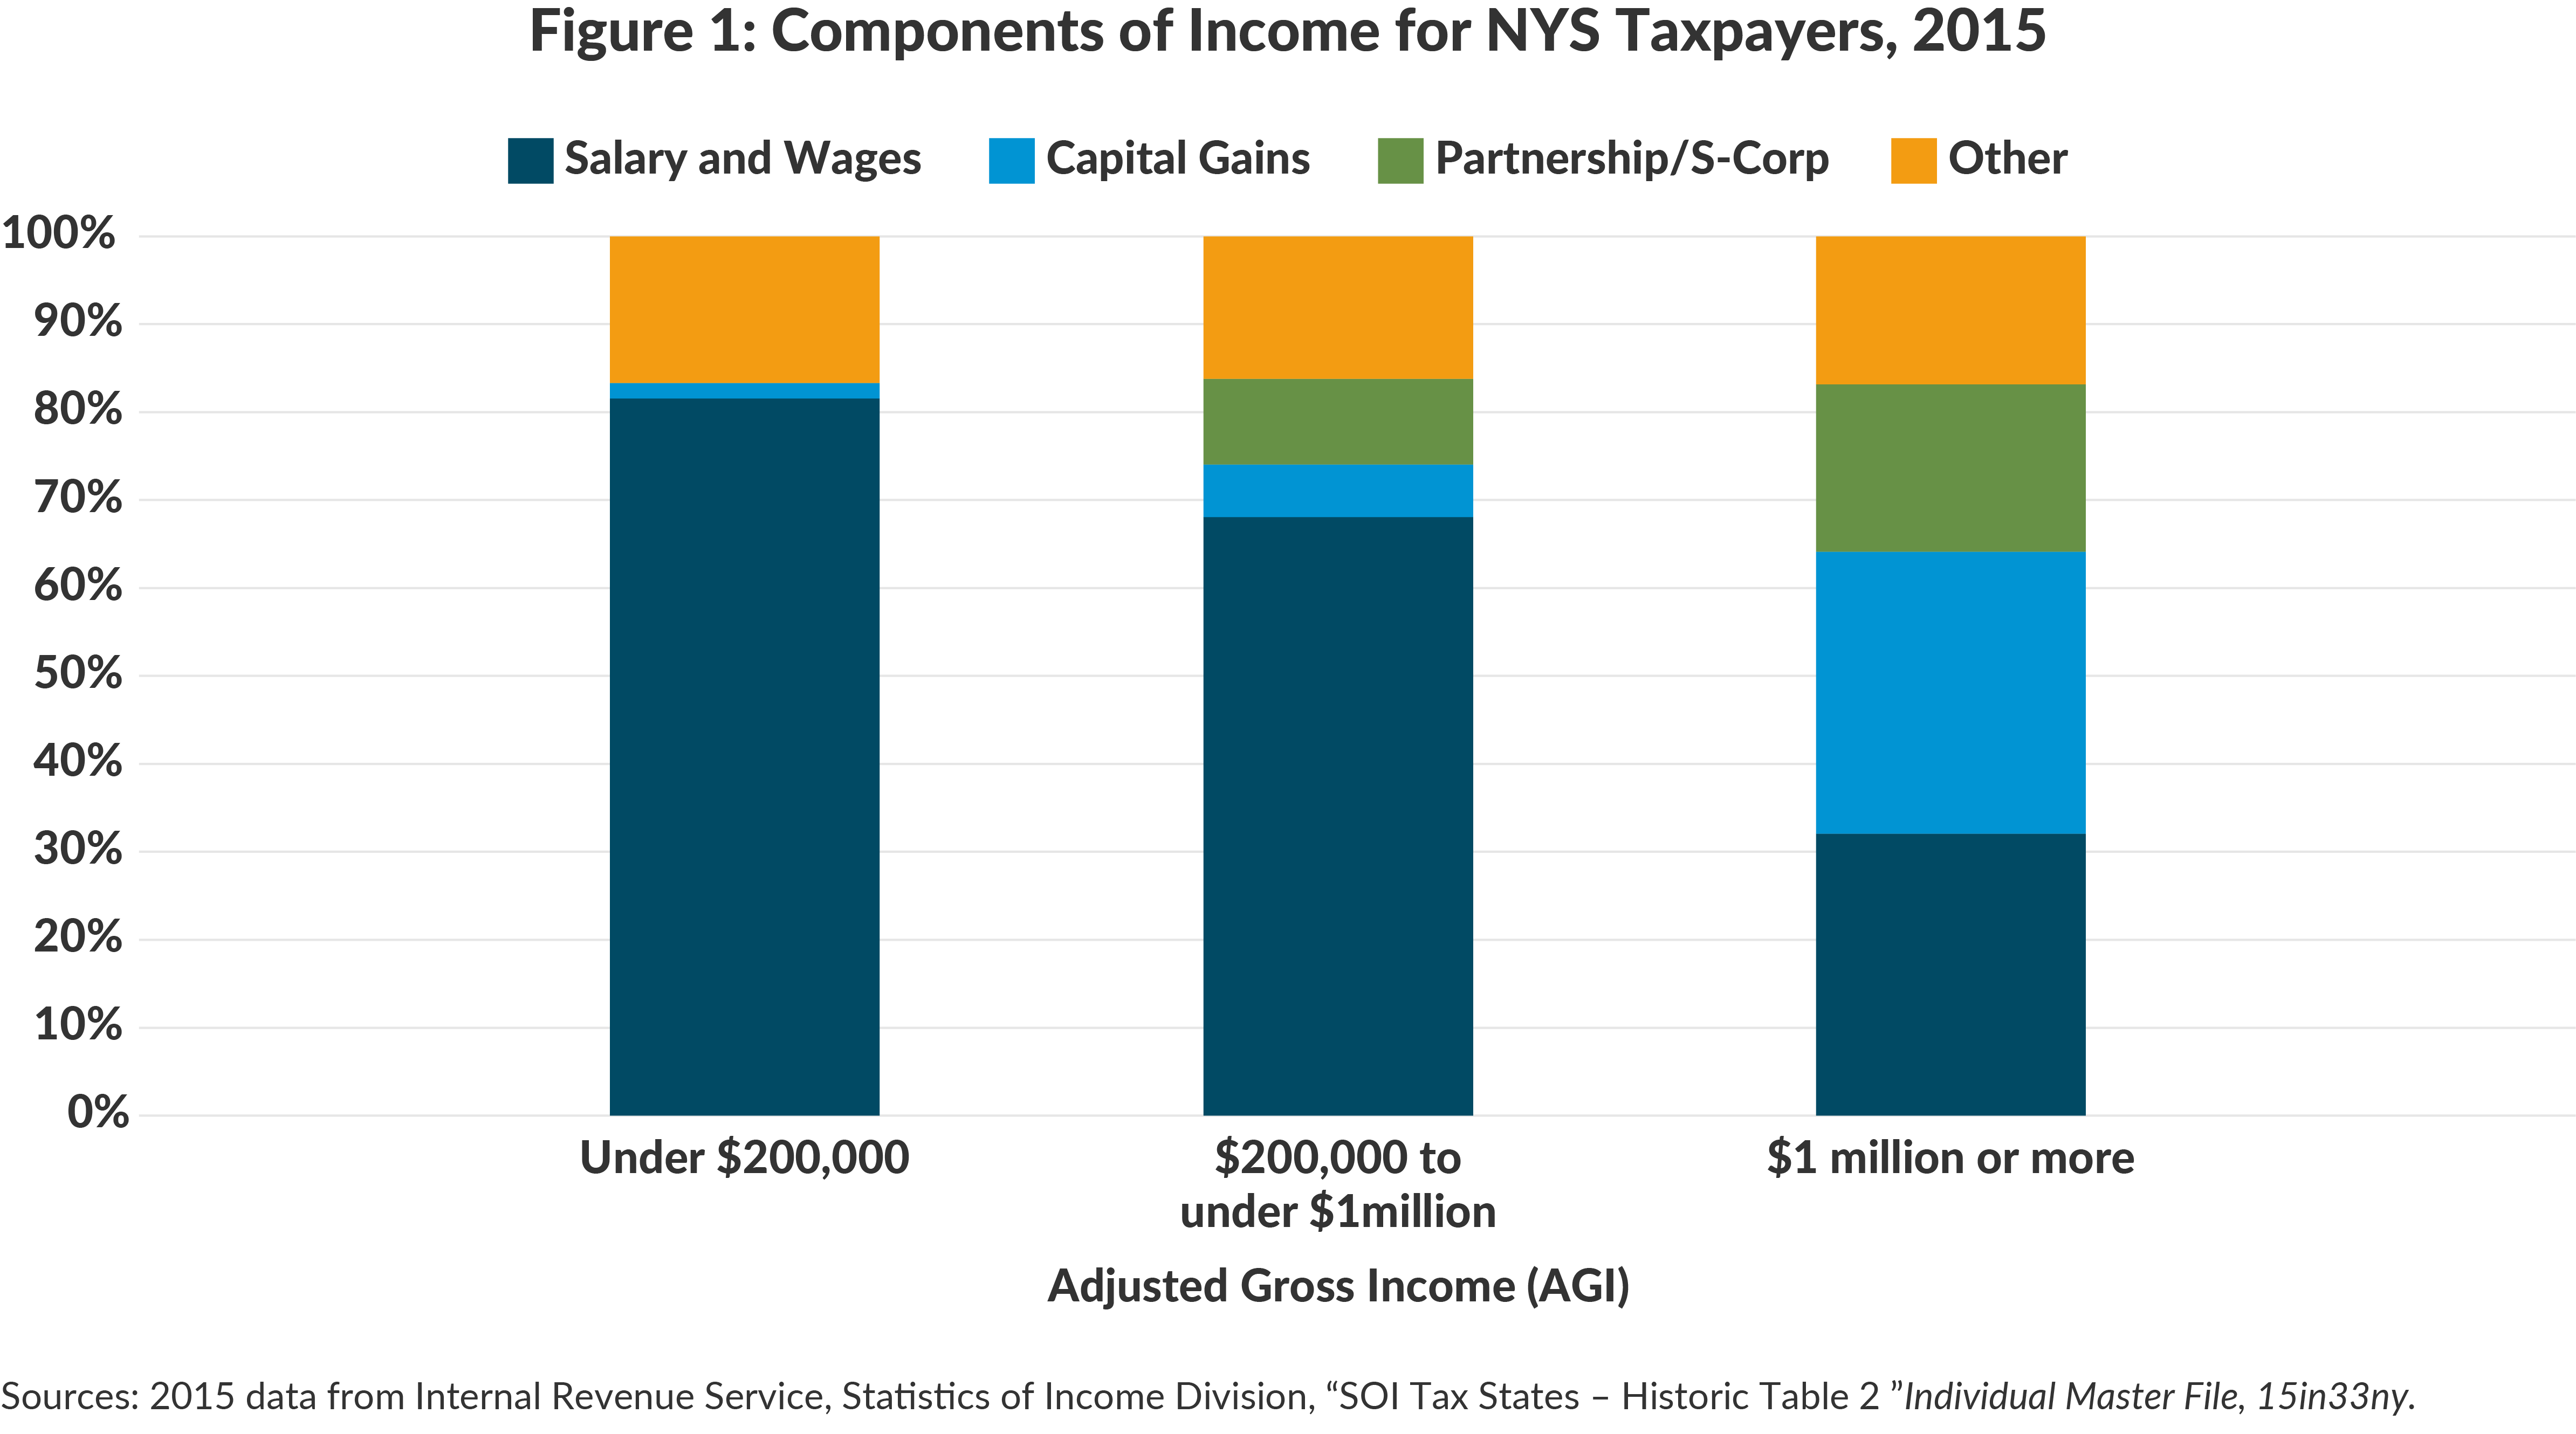 Components of Income of NY Taxpayers, 2015